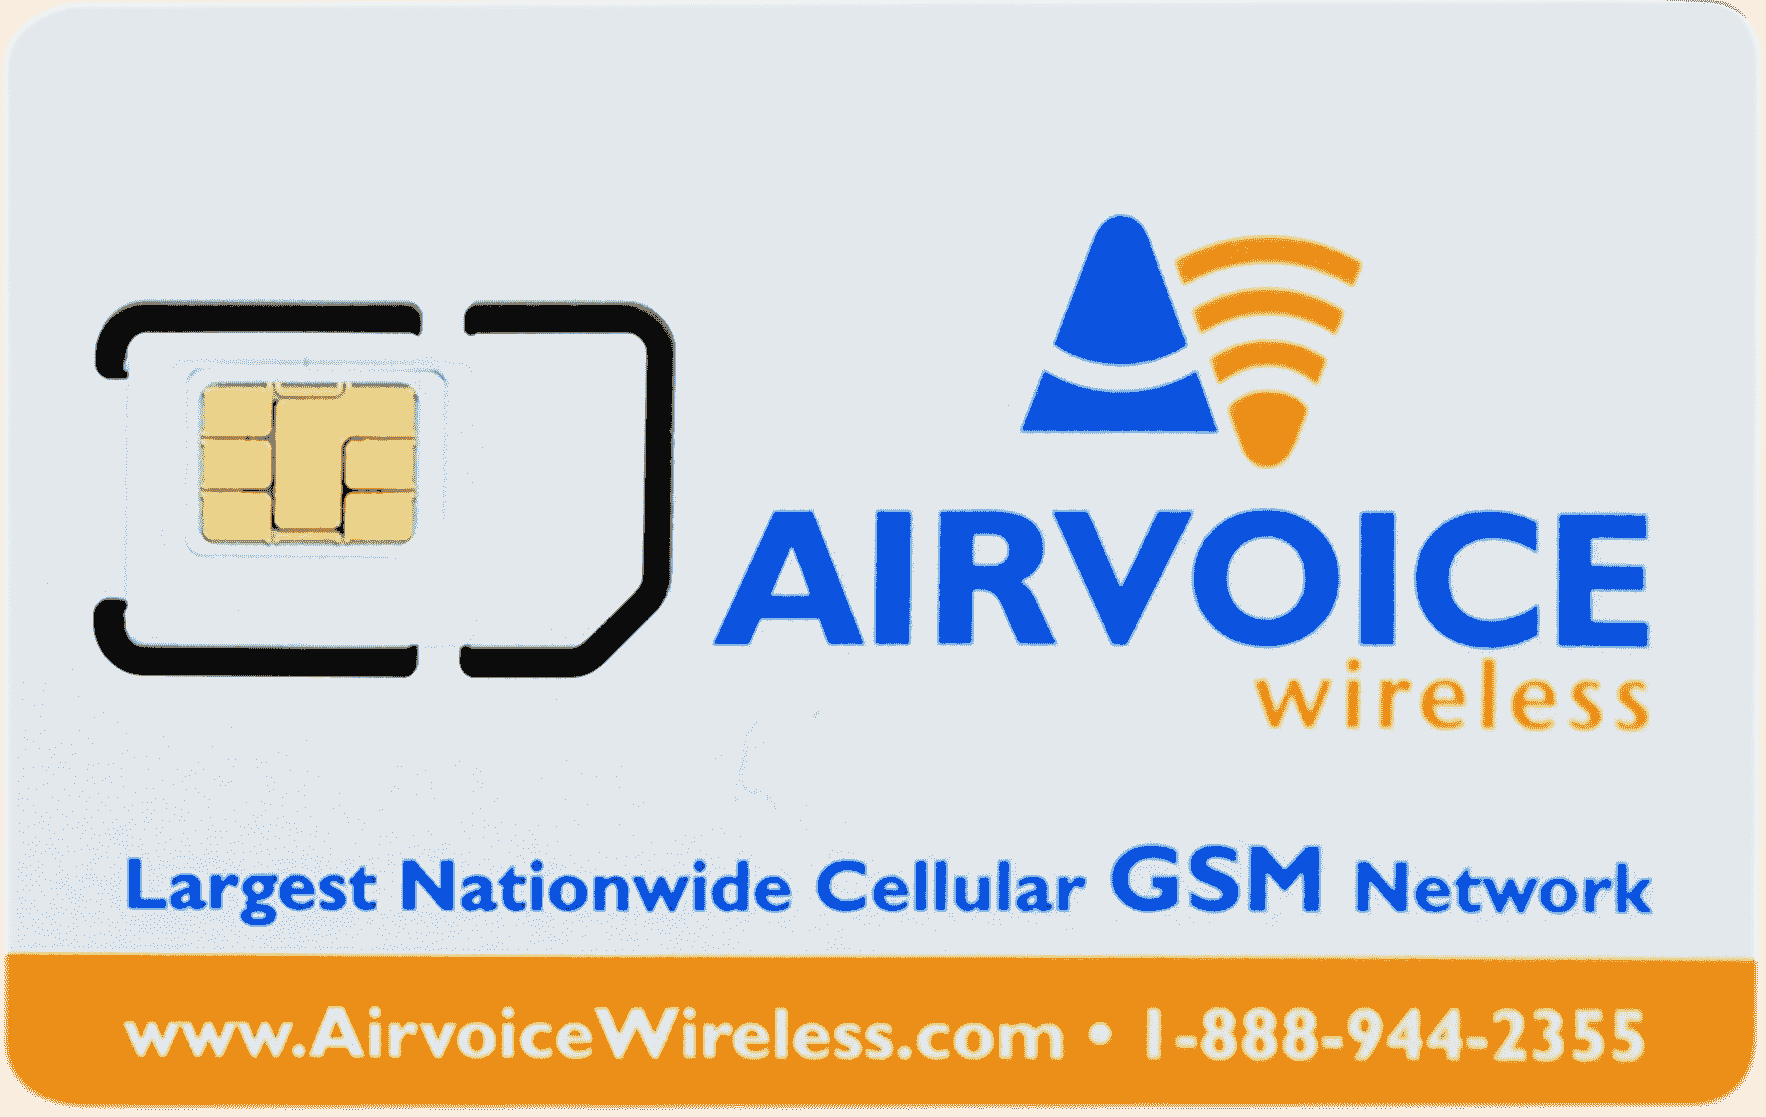 USA AT&T AirVoice refill $10 pay as you go 90 days